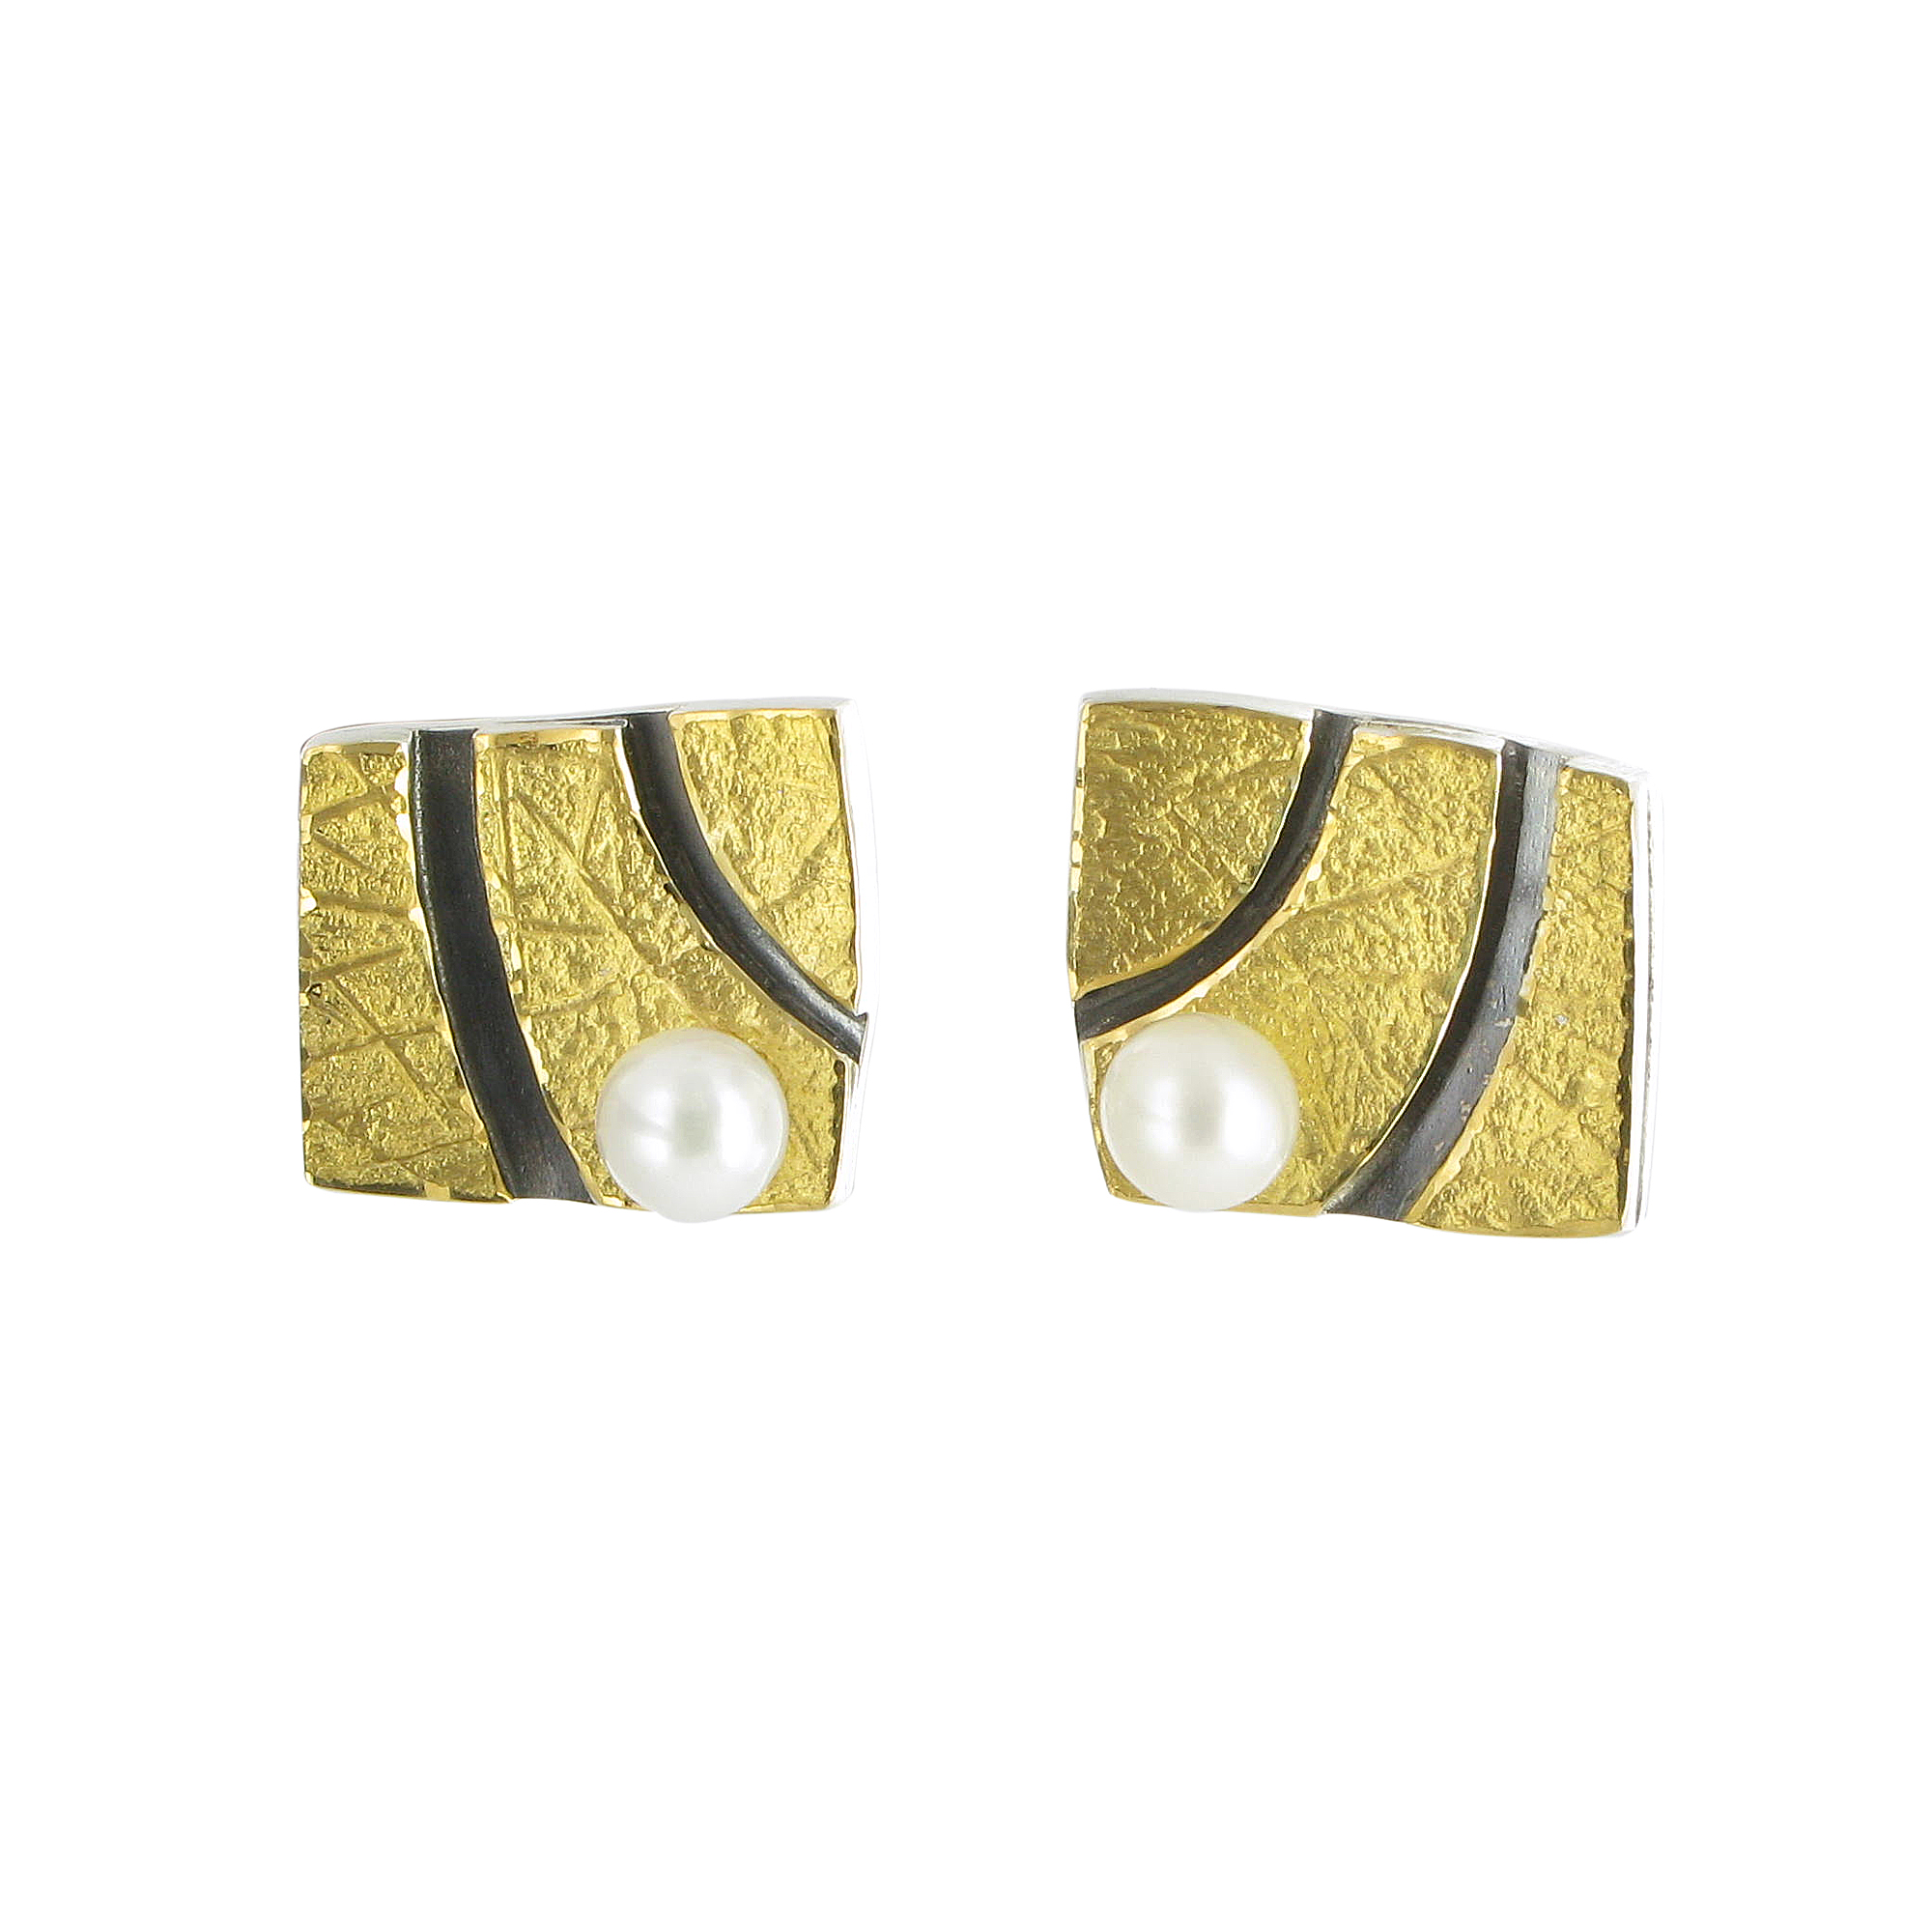 Babylonia pearl and gold stud earrings